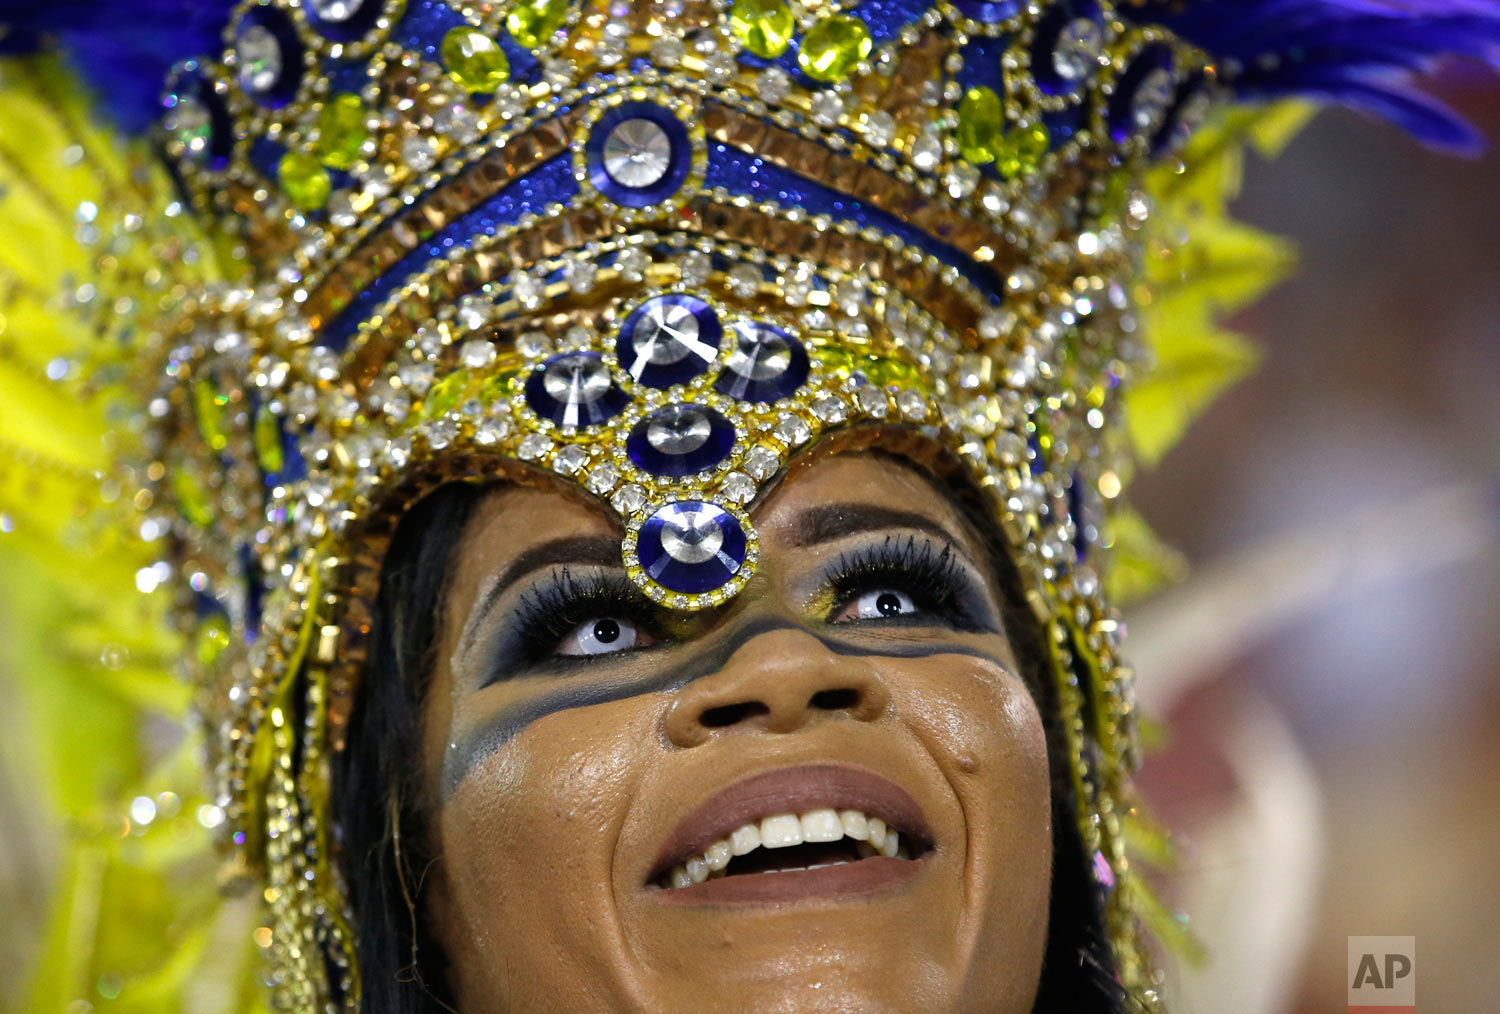 A performer from the Uniao da Ilha samba school parades during Carnival celebrations at the Sambadrome in Rio de Janeiro, Brazil, early Tuesday, Feb. 13, 2018. (AP Photo/Silvia Izquierdo)